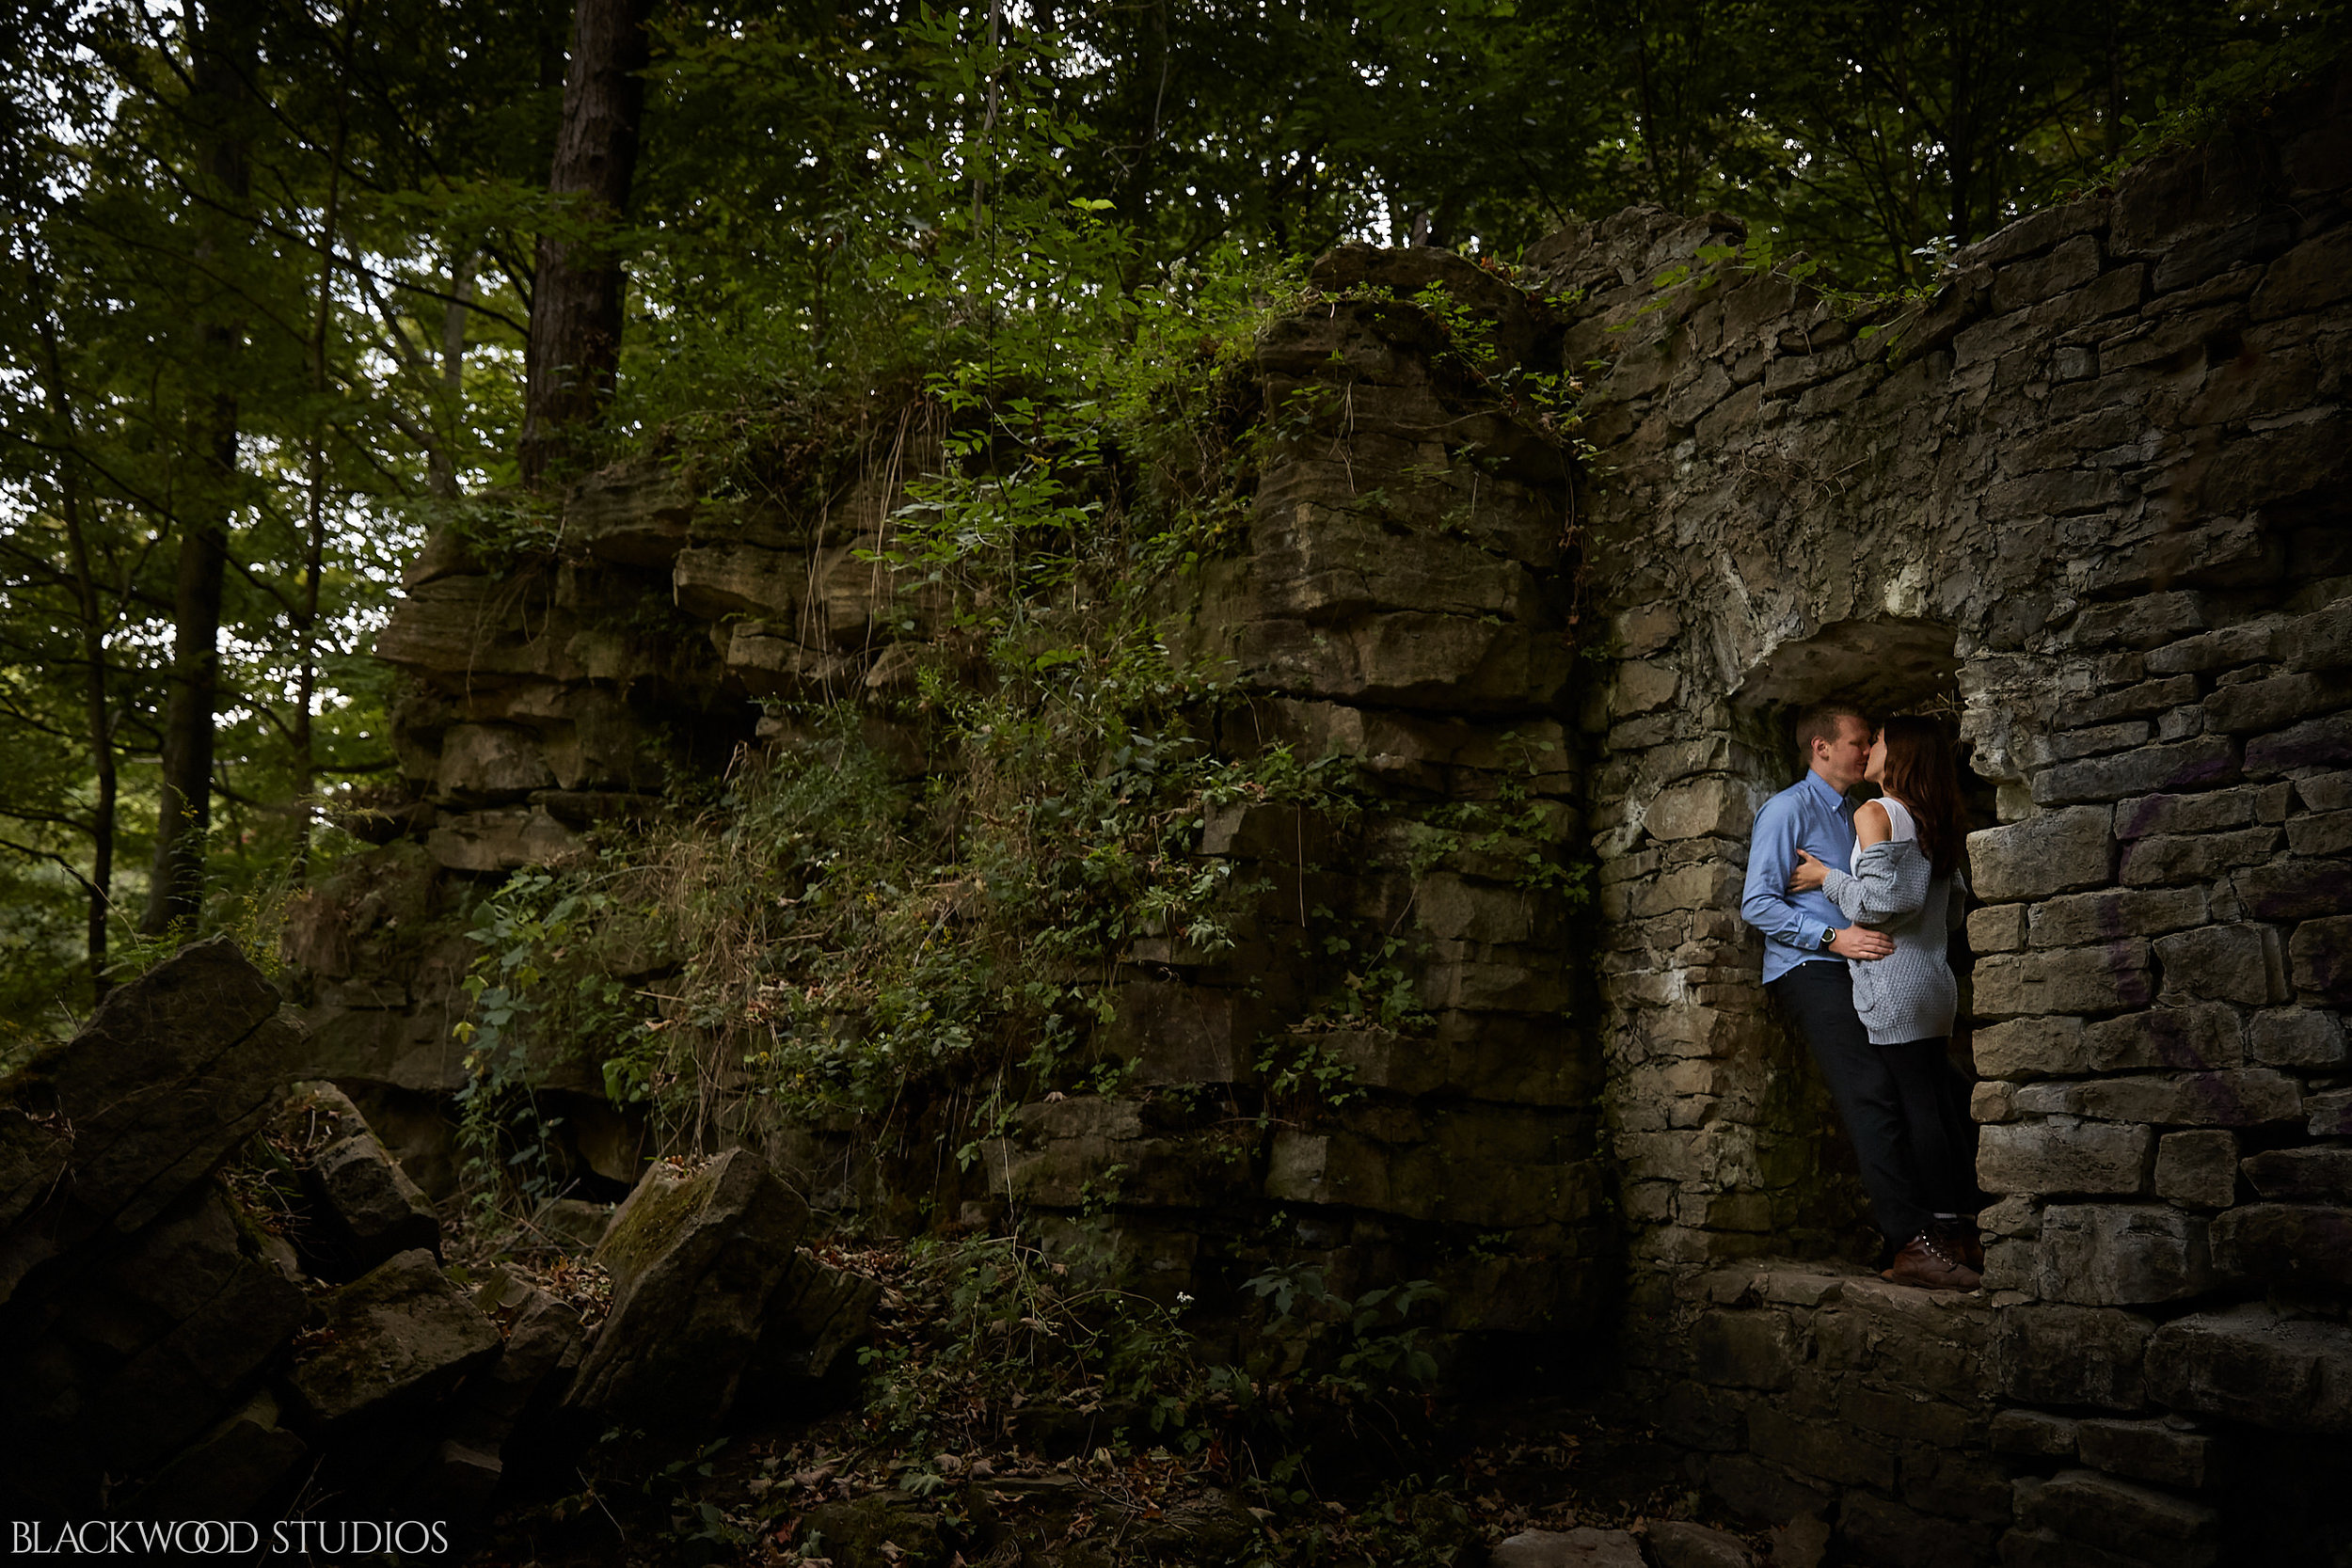 Blackwood-Studios-photography-20180922-185226-Jeff-and-Raven-Engagement-0669-Balls-Falls-Conservation-Area-Lincoln-Niagara-Ontario.jpg